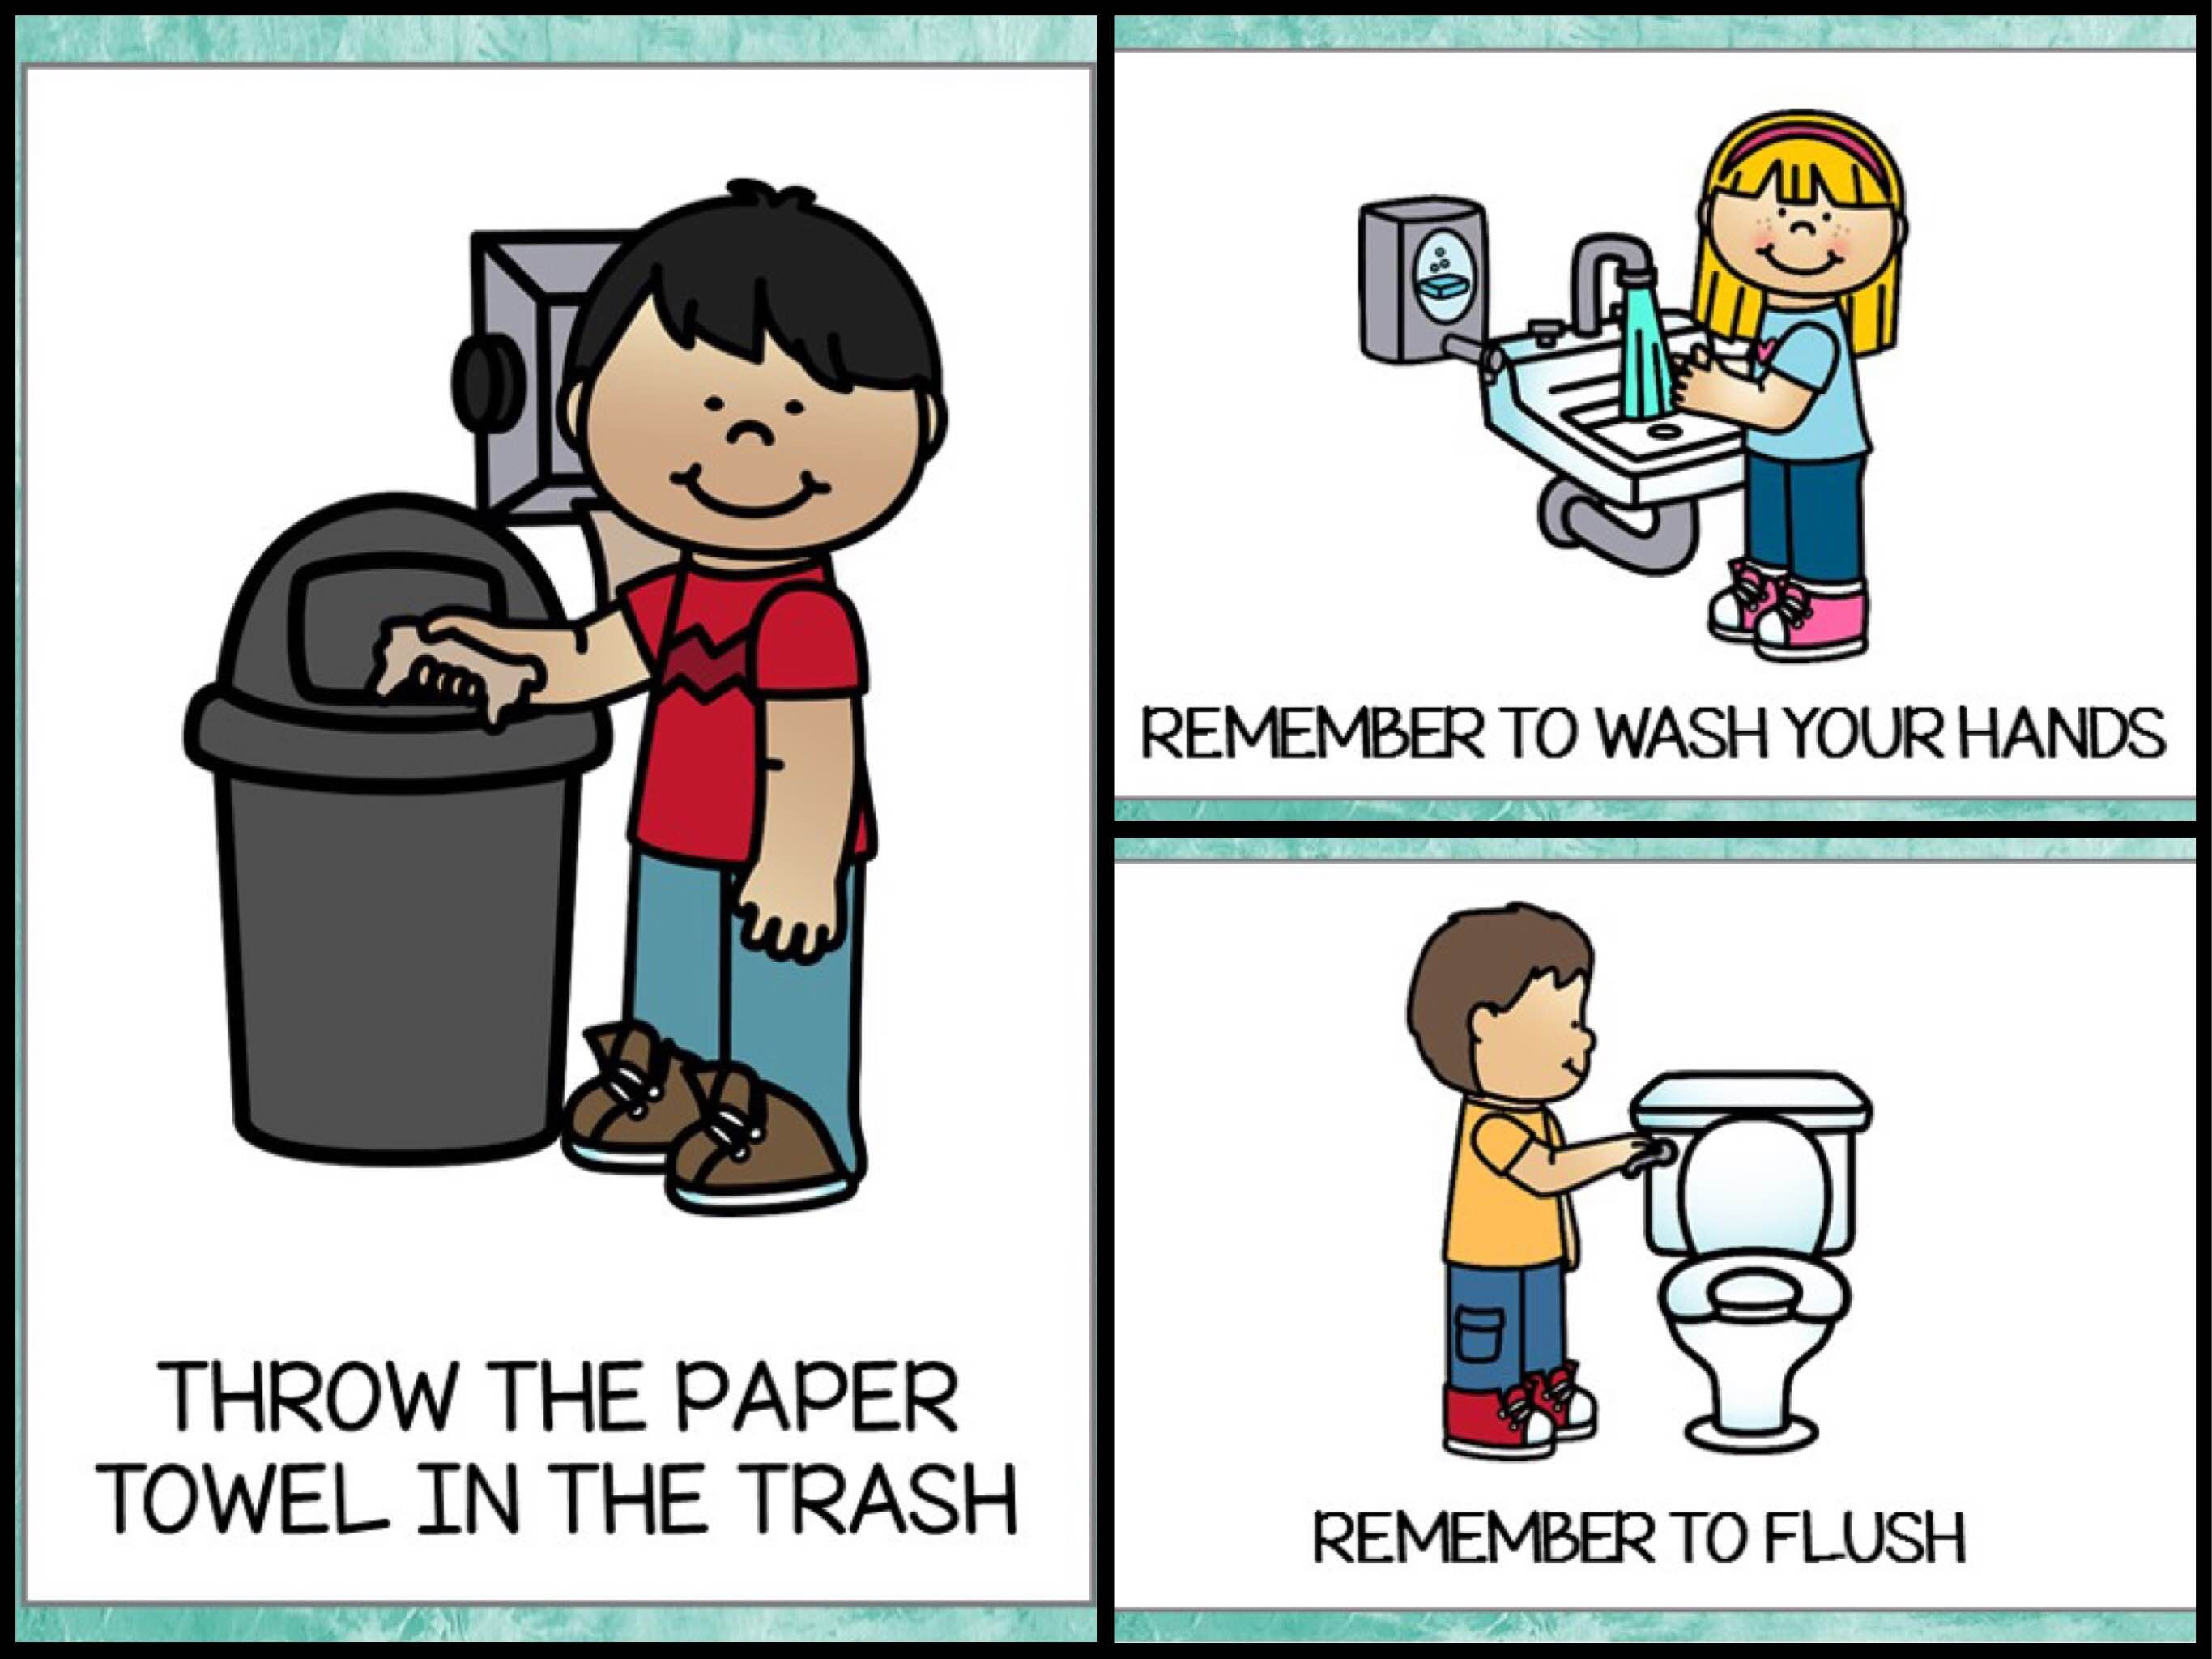 Going to the bathroom at school - Bathroom Posters Free Printable